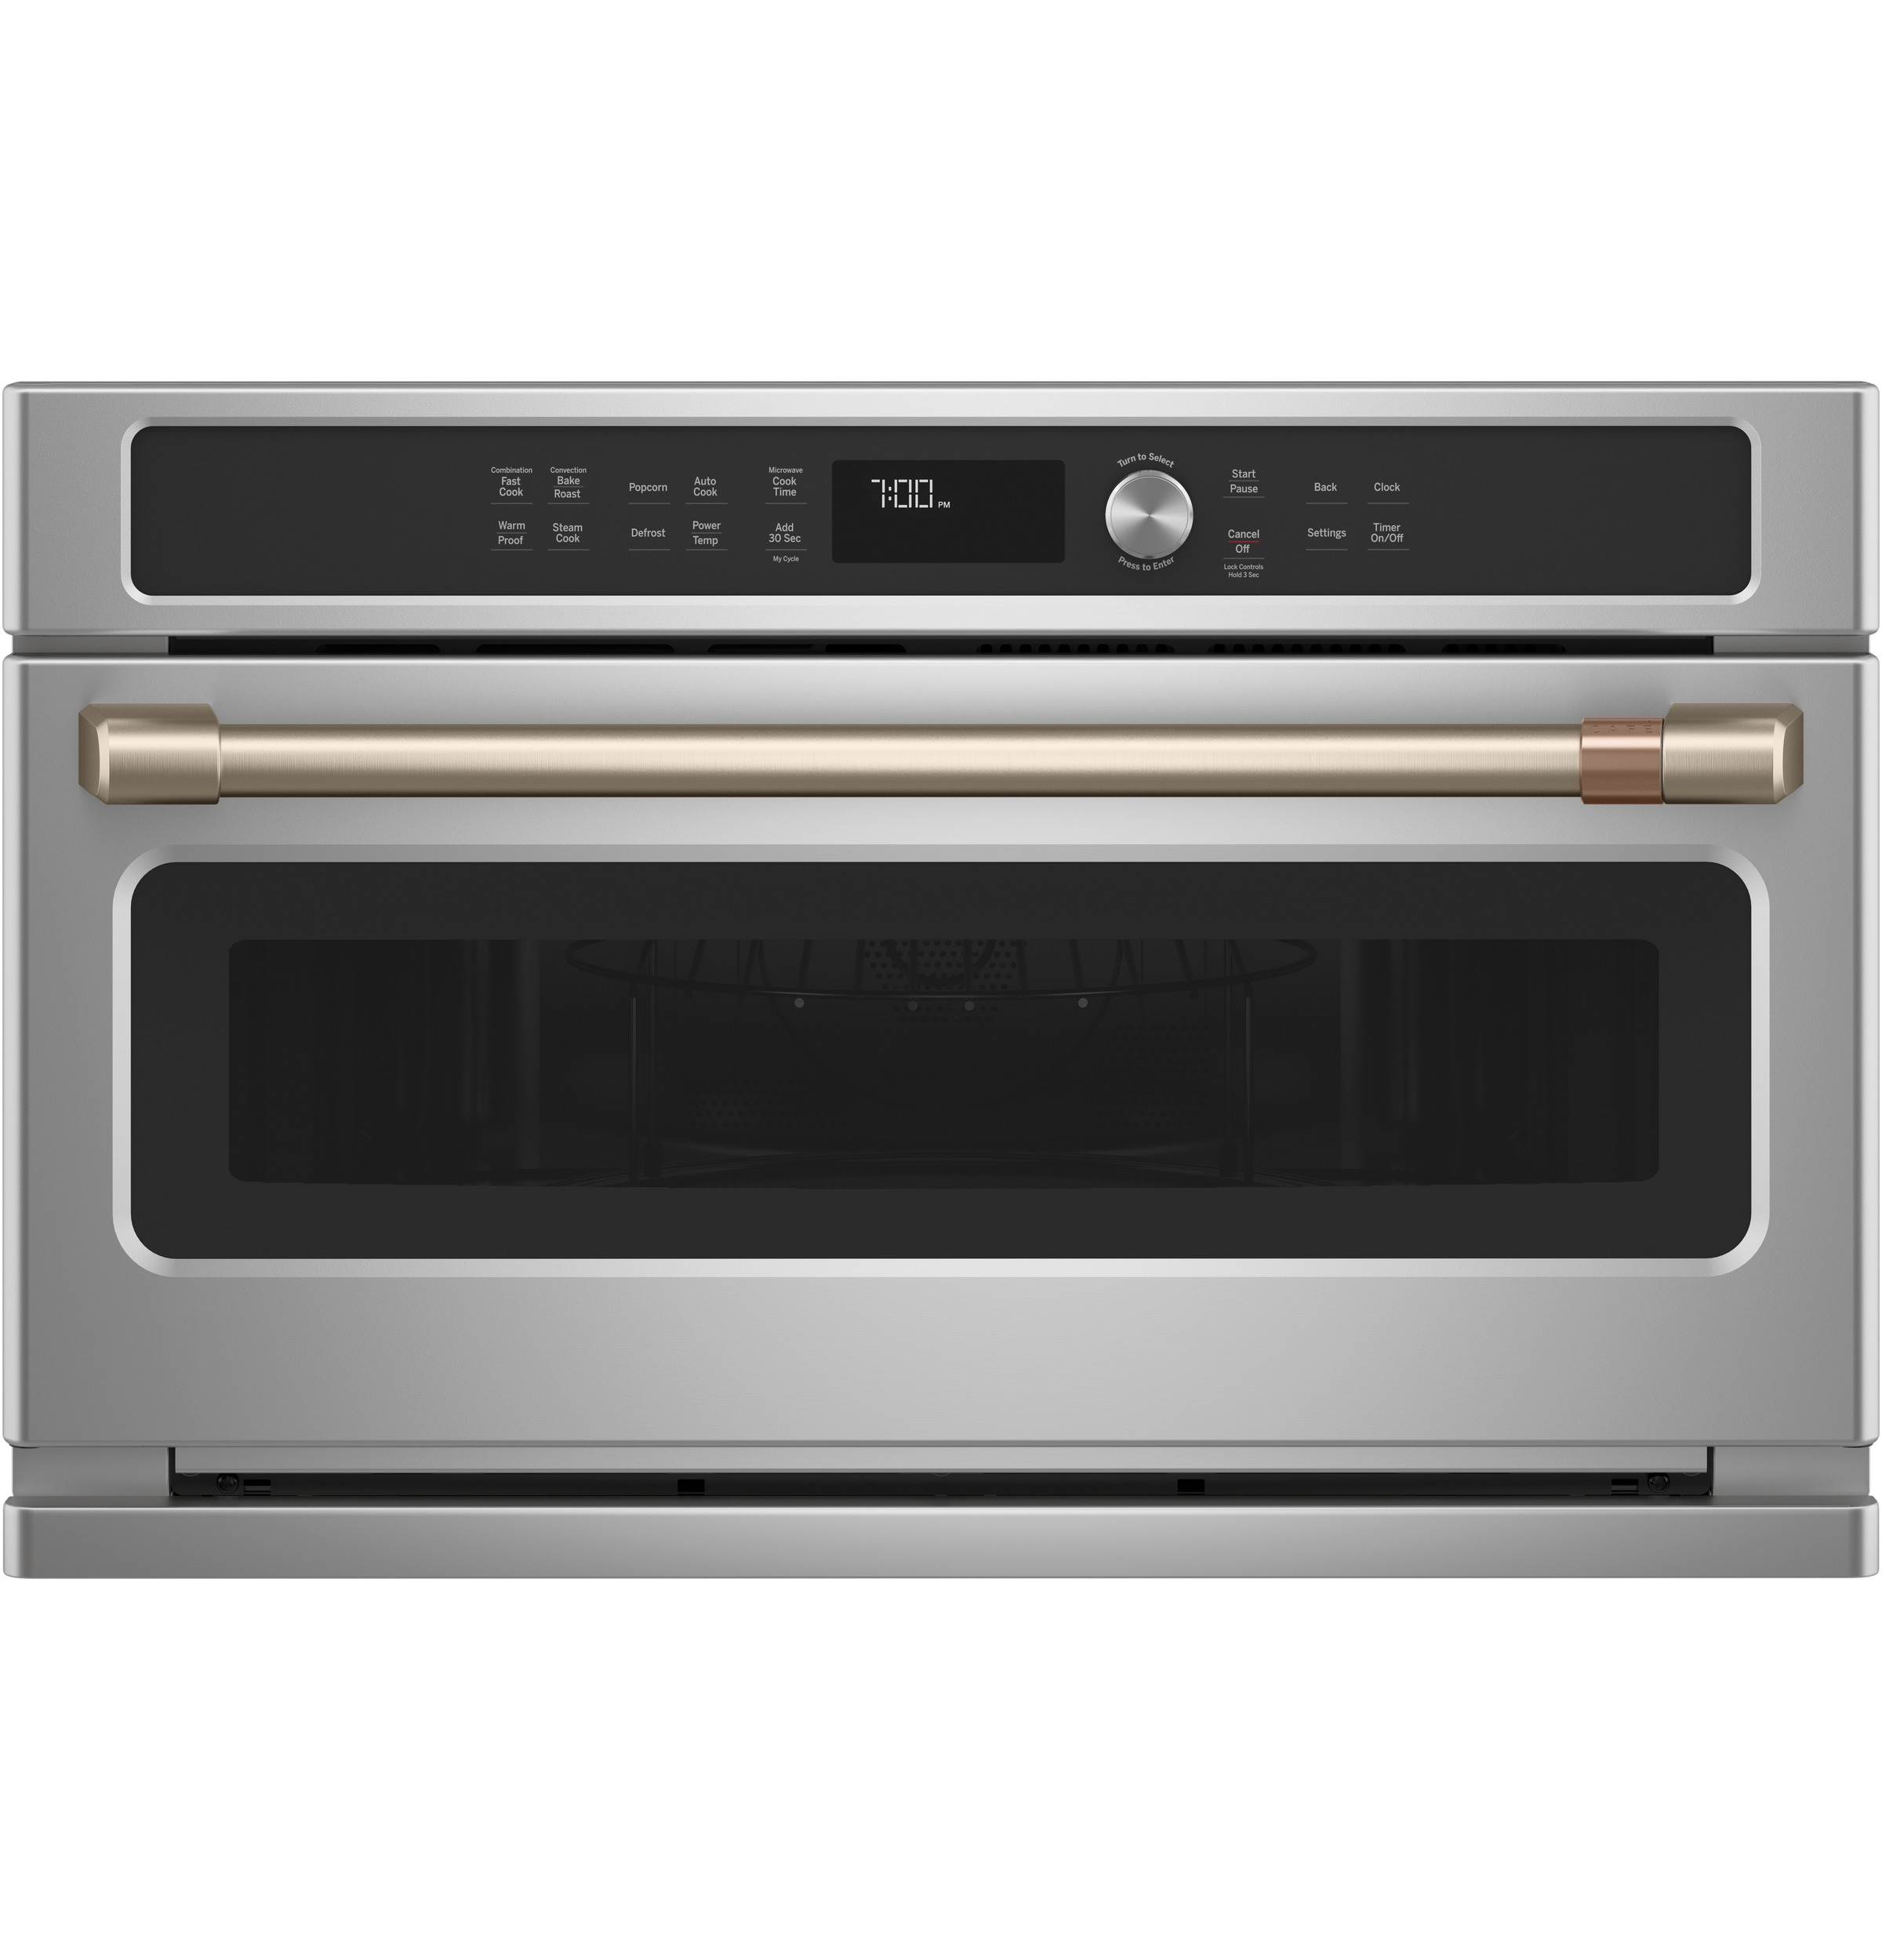 Model: CWB713P2NS1 | Cafe Café™ Built-In Microwave/Convection Oven